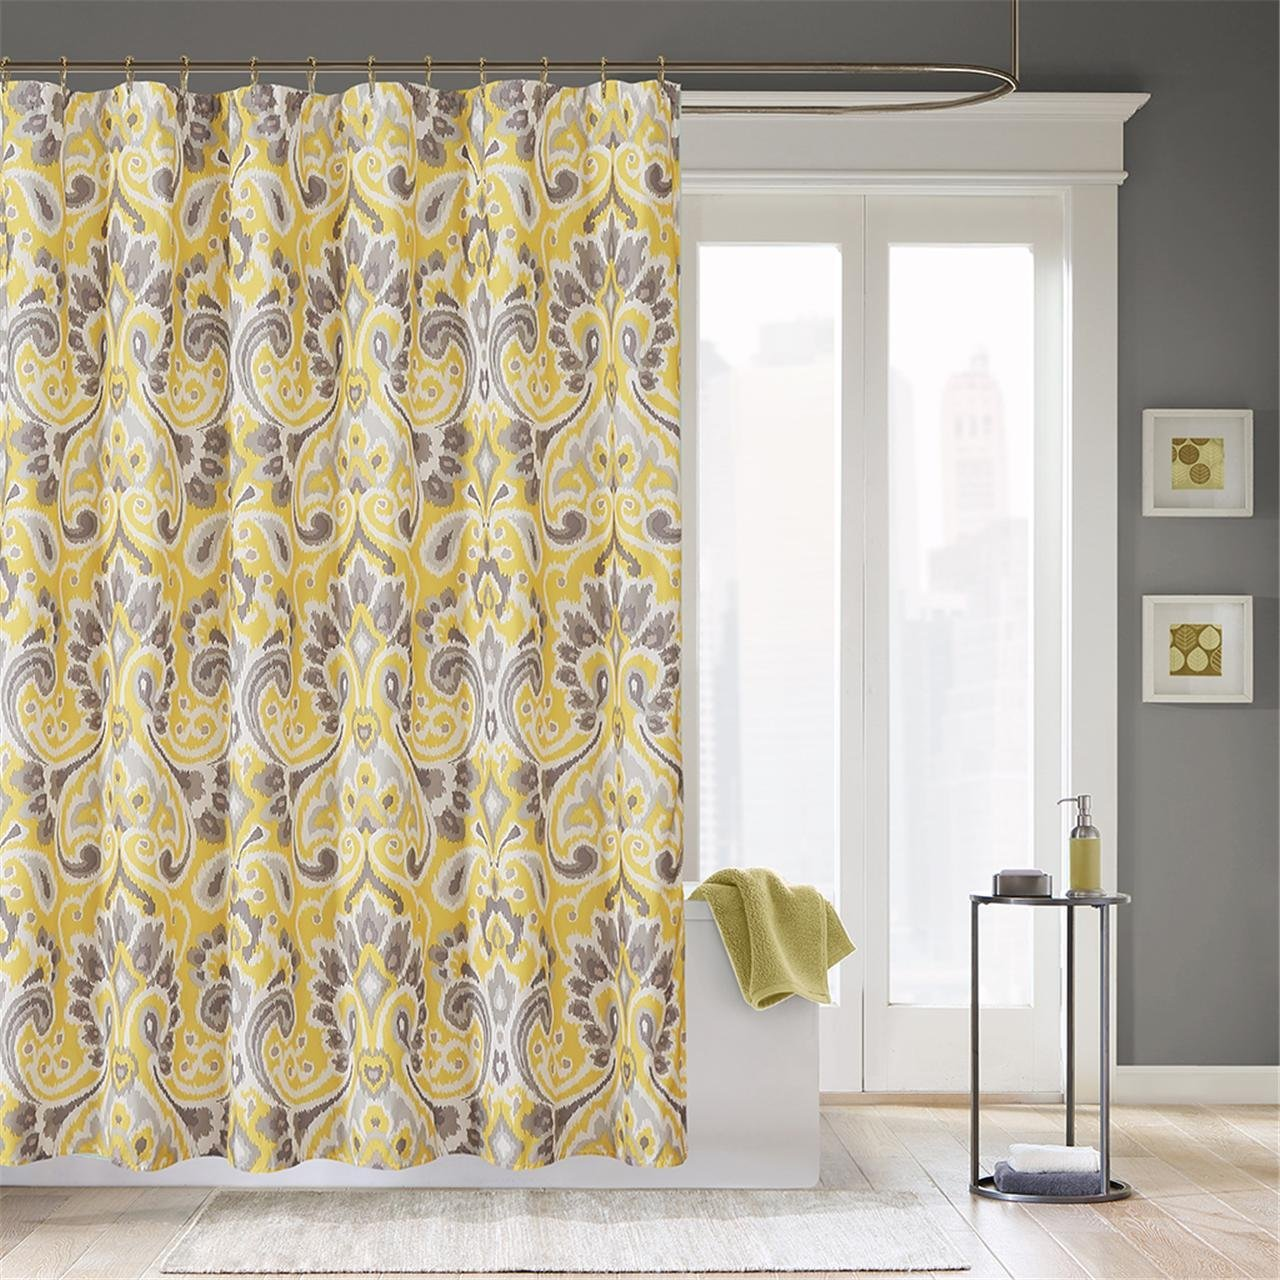 Get Quotations Madison Park Capris Modern Shower Curtain Abstract Casual Desig Curtains For Bathroom 72